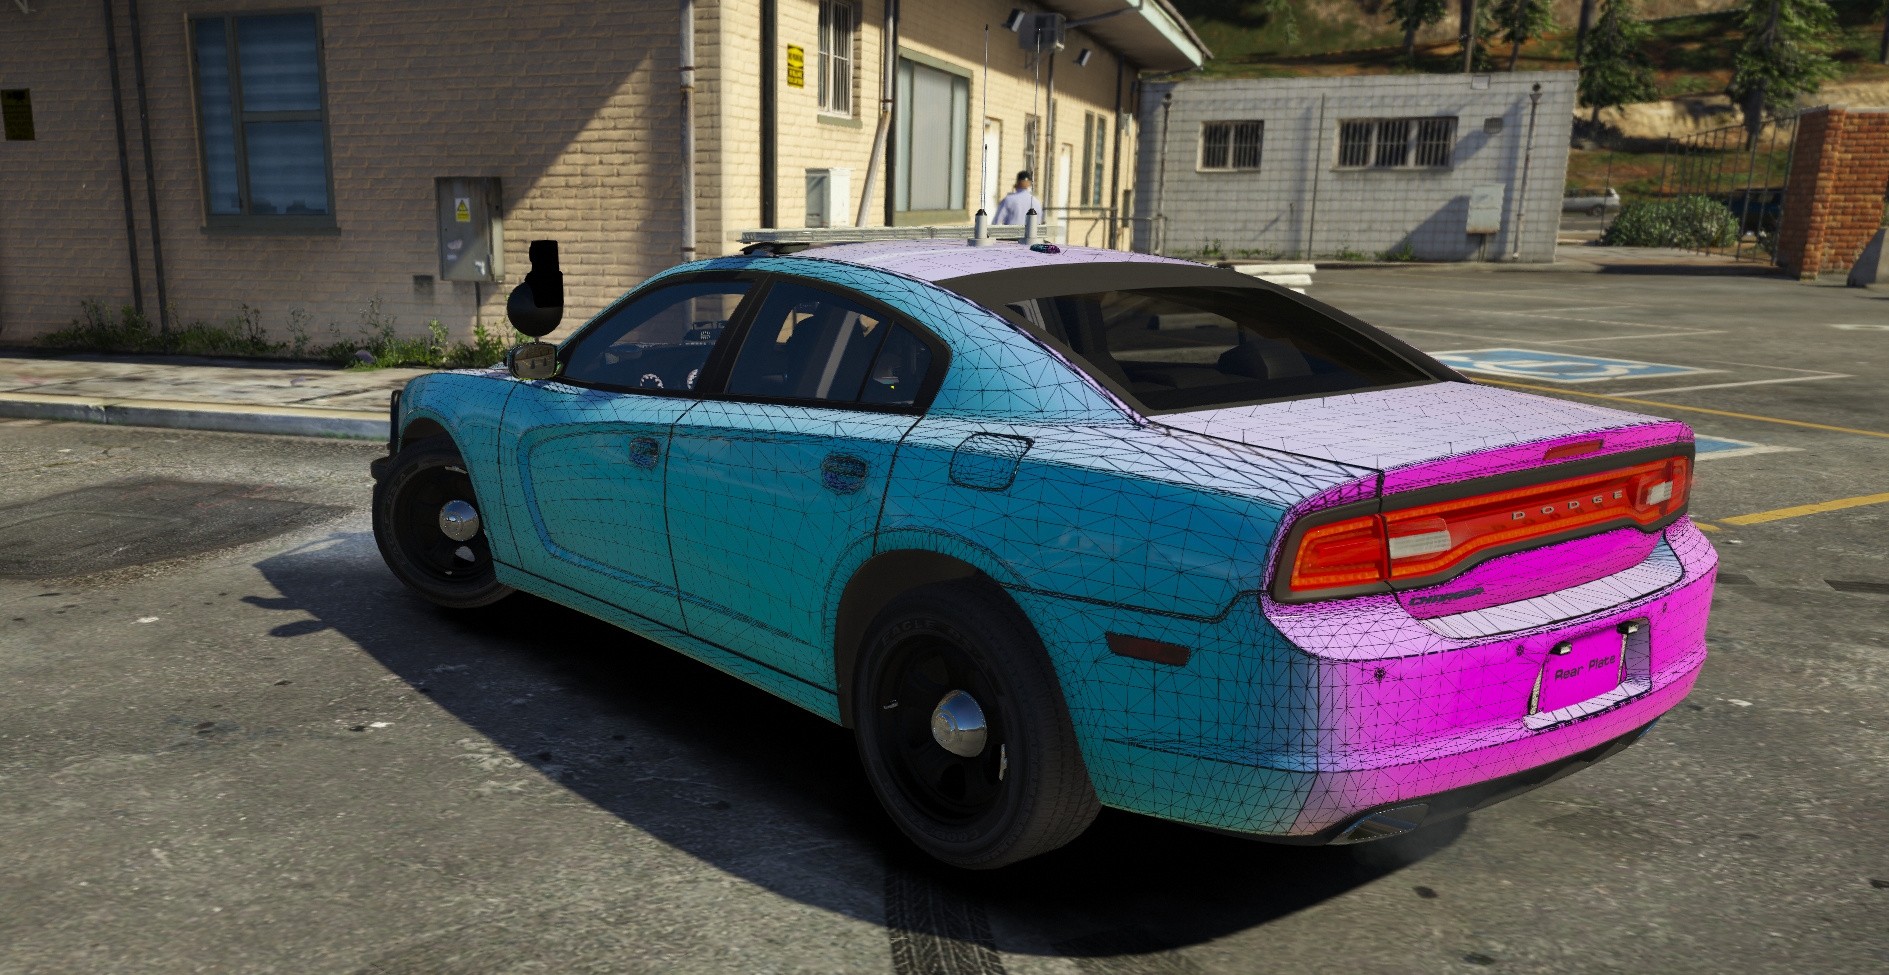 Release] 2014 Dodge Charger | All Blue | Non-ELS - Releases